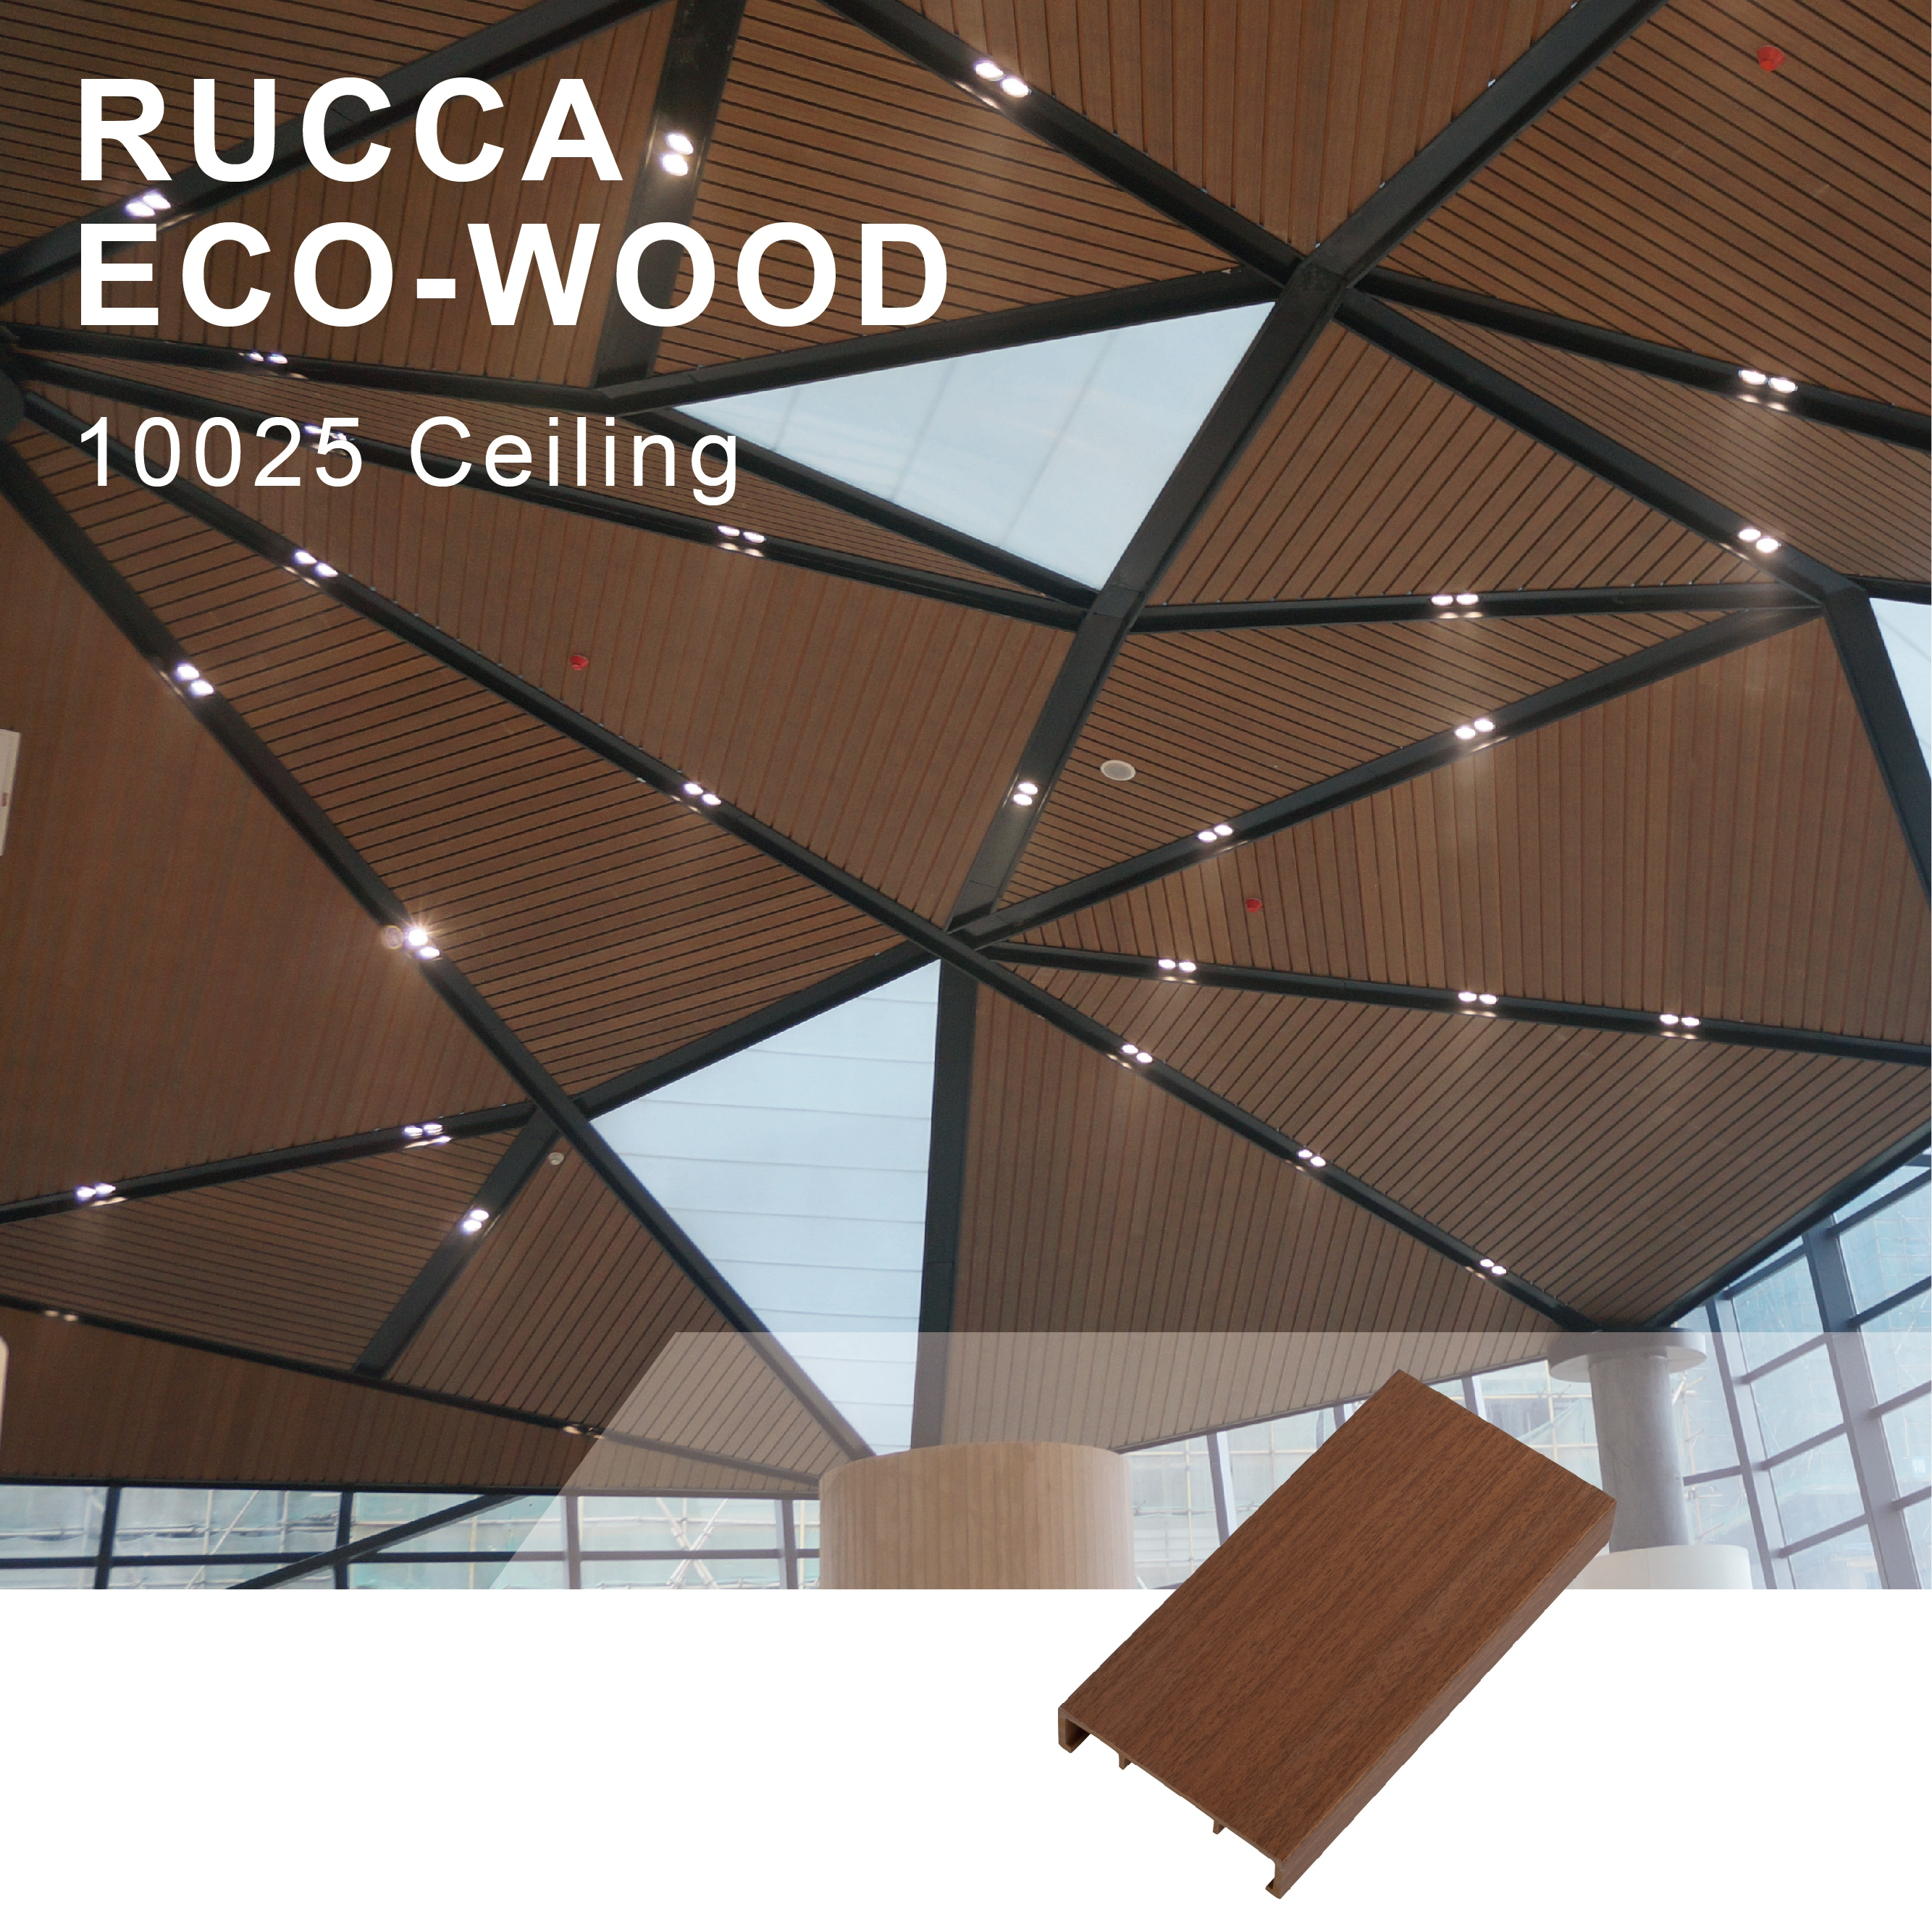 Image of: Wpc Fauxwood Modern Home Decoration Waterproof Wood Plastic Bathroom Kitchen Ceiling Panels 100 25mm Buy Wpc Modern Home Decoration Waterproof Bathroom Ceiling Panels Wood Plastic Ceiling Product On Alibaba Com